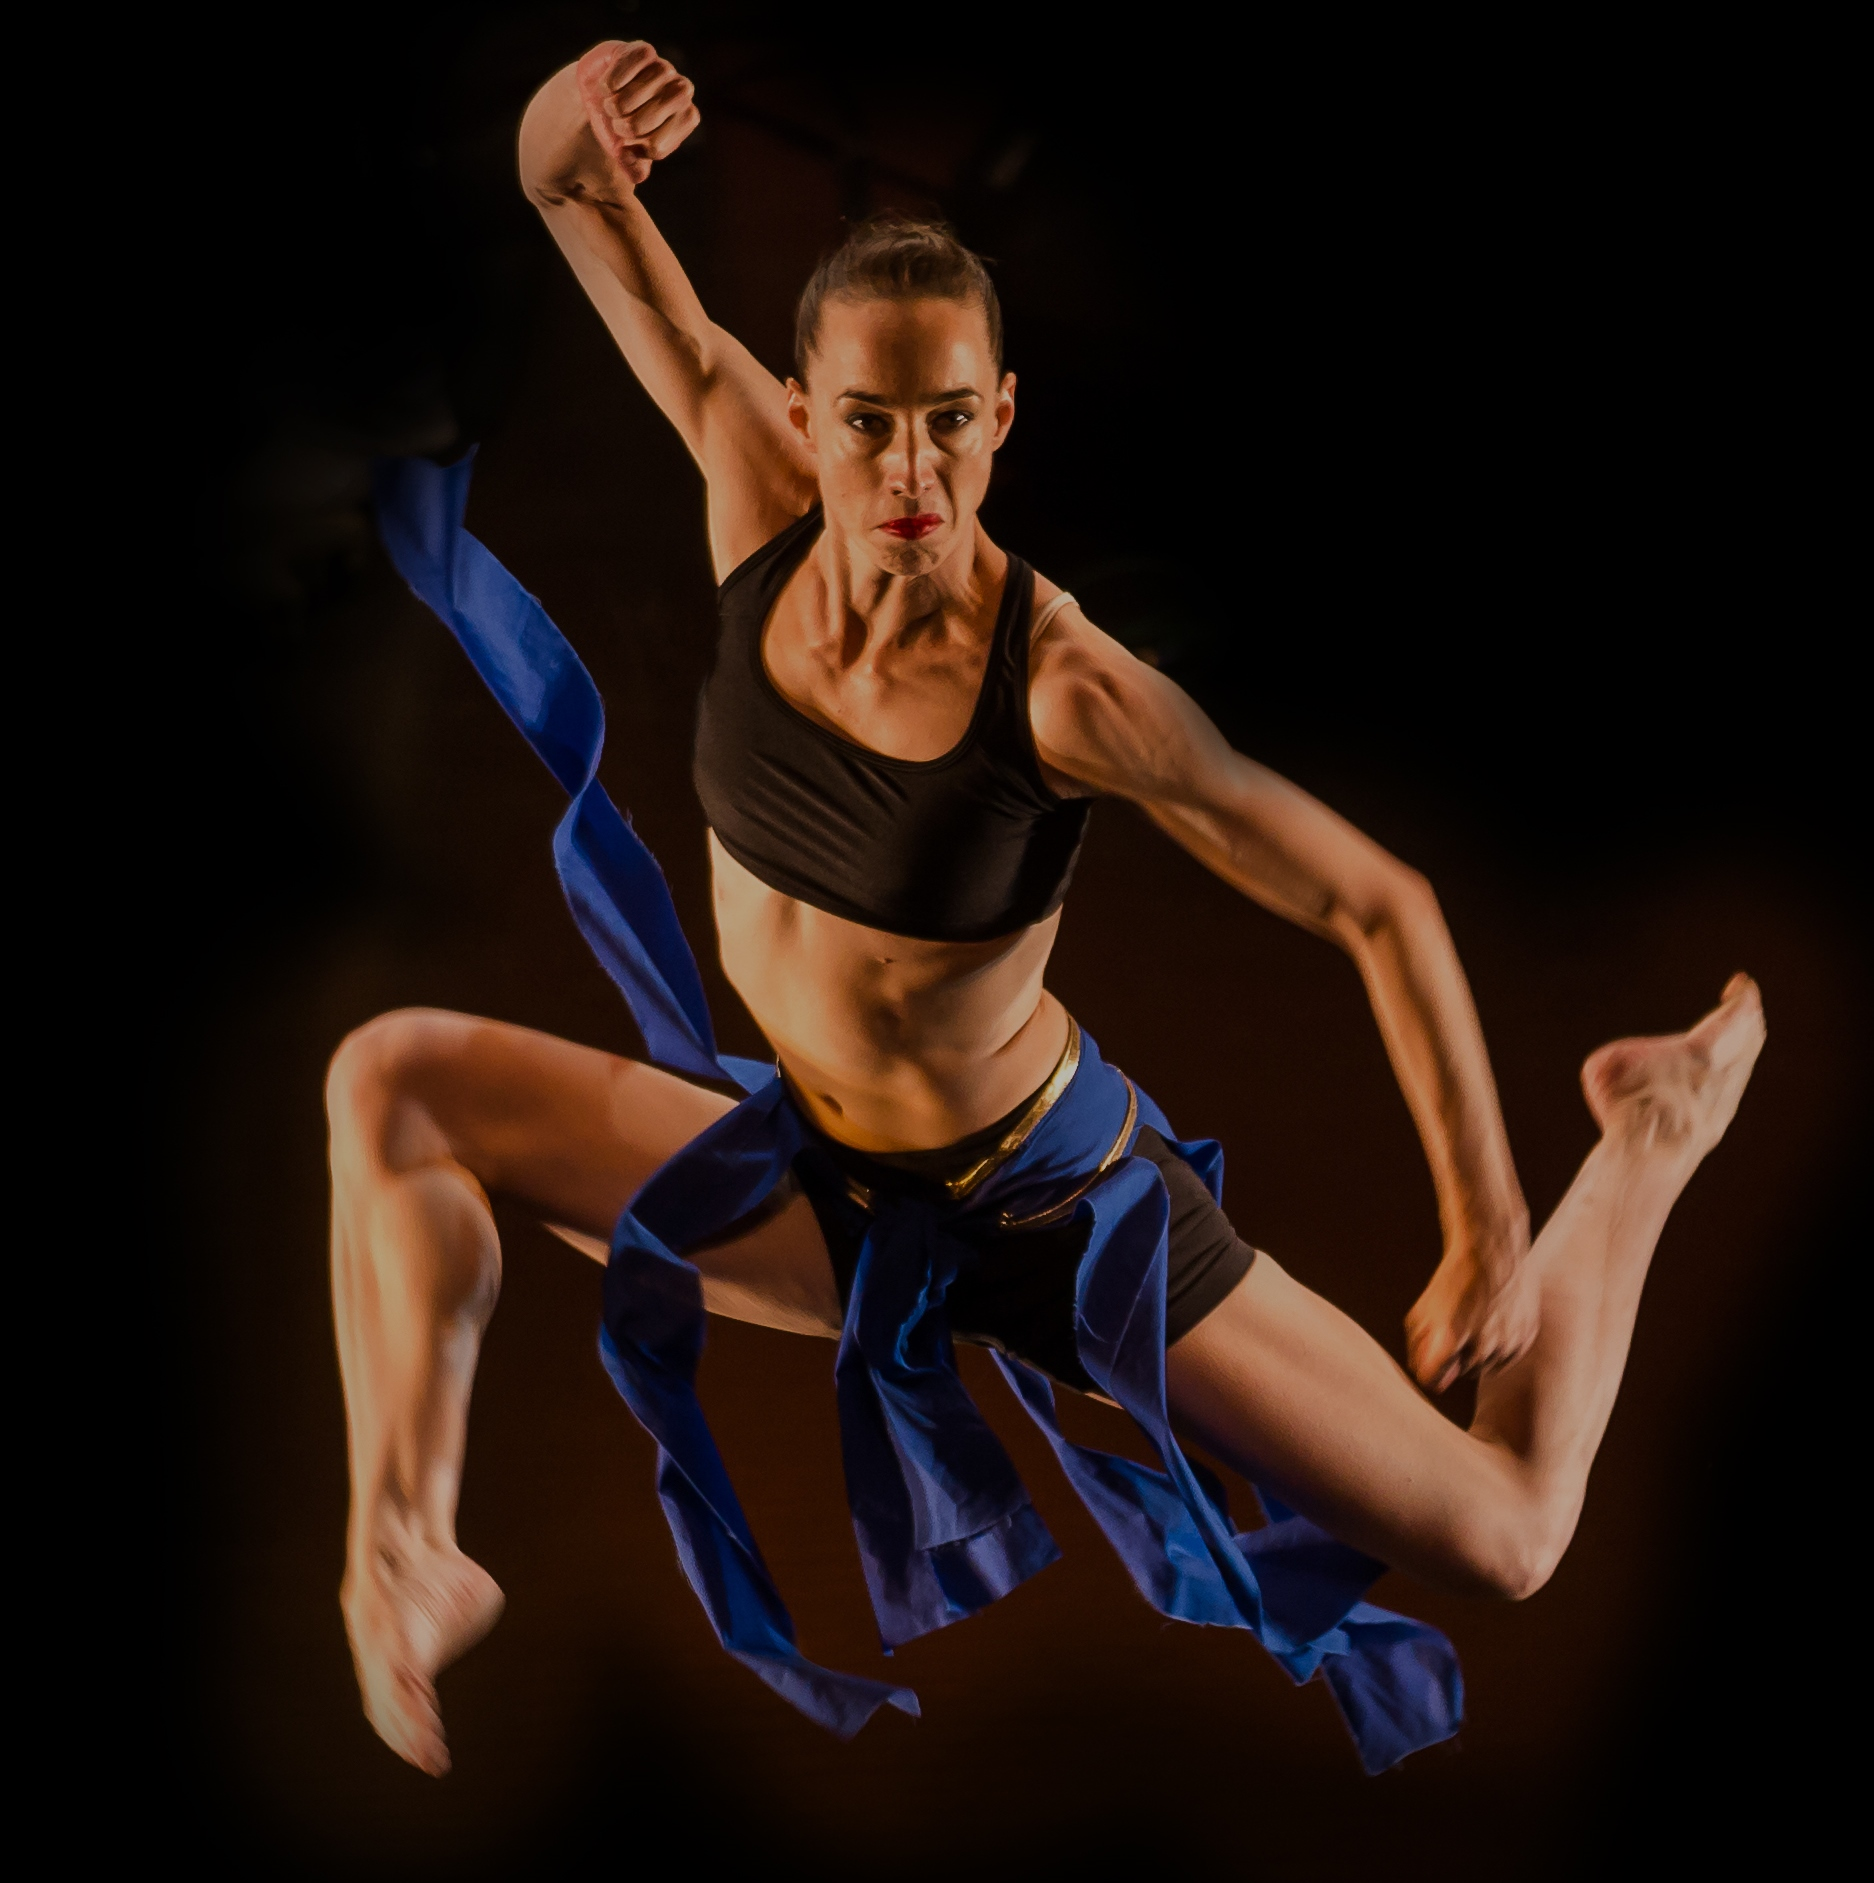 A photo of a white woman wearing blue strips of fabric, dancing.